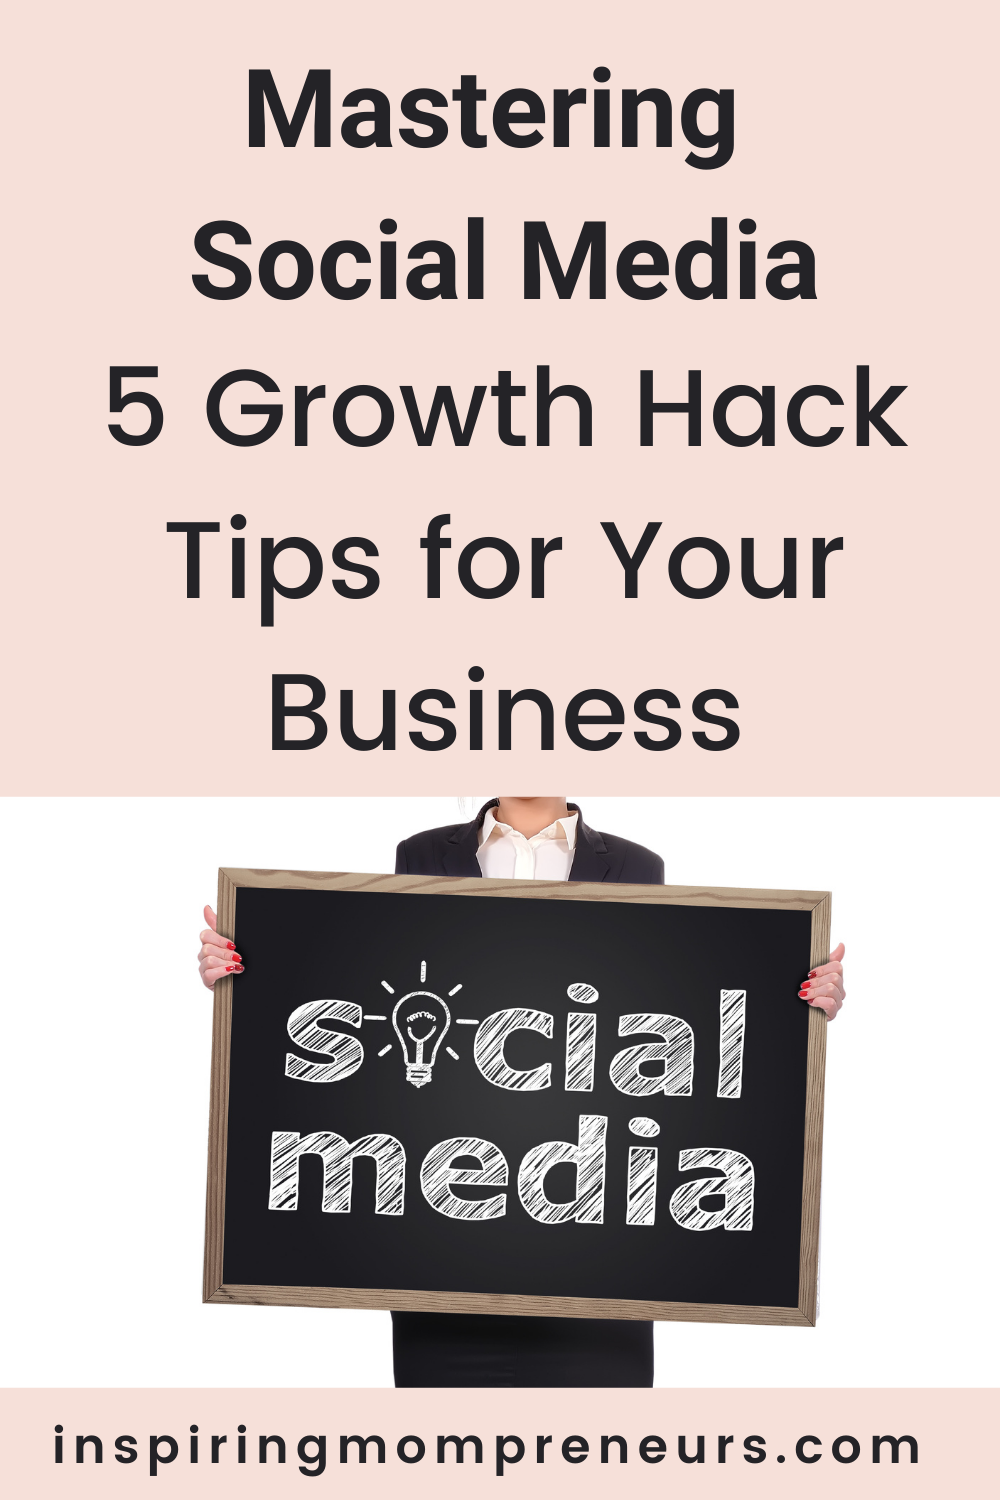 Social media offers an exceptional choice for promoting a business and unlimited exposure. Use these 5 growth hacks for mastering social media in your business. #mastering #socialmedia #growthhacktips